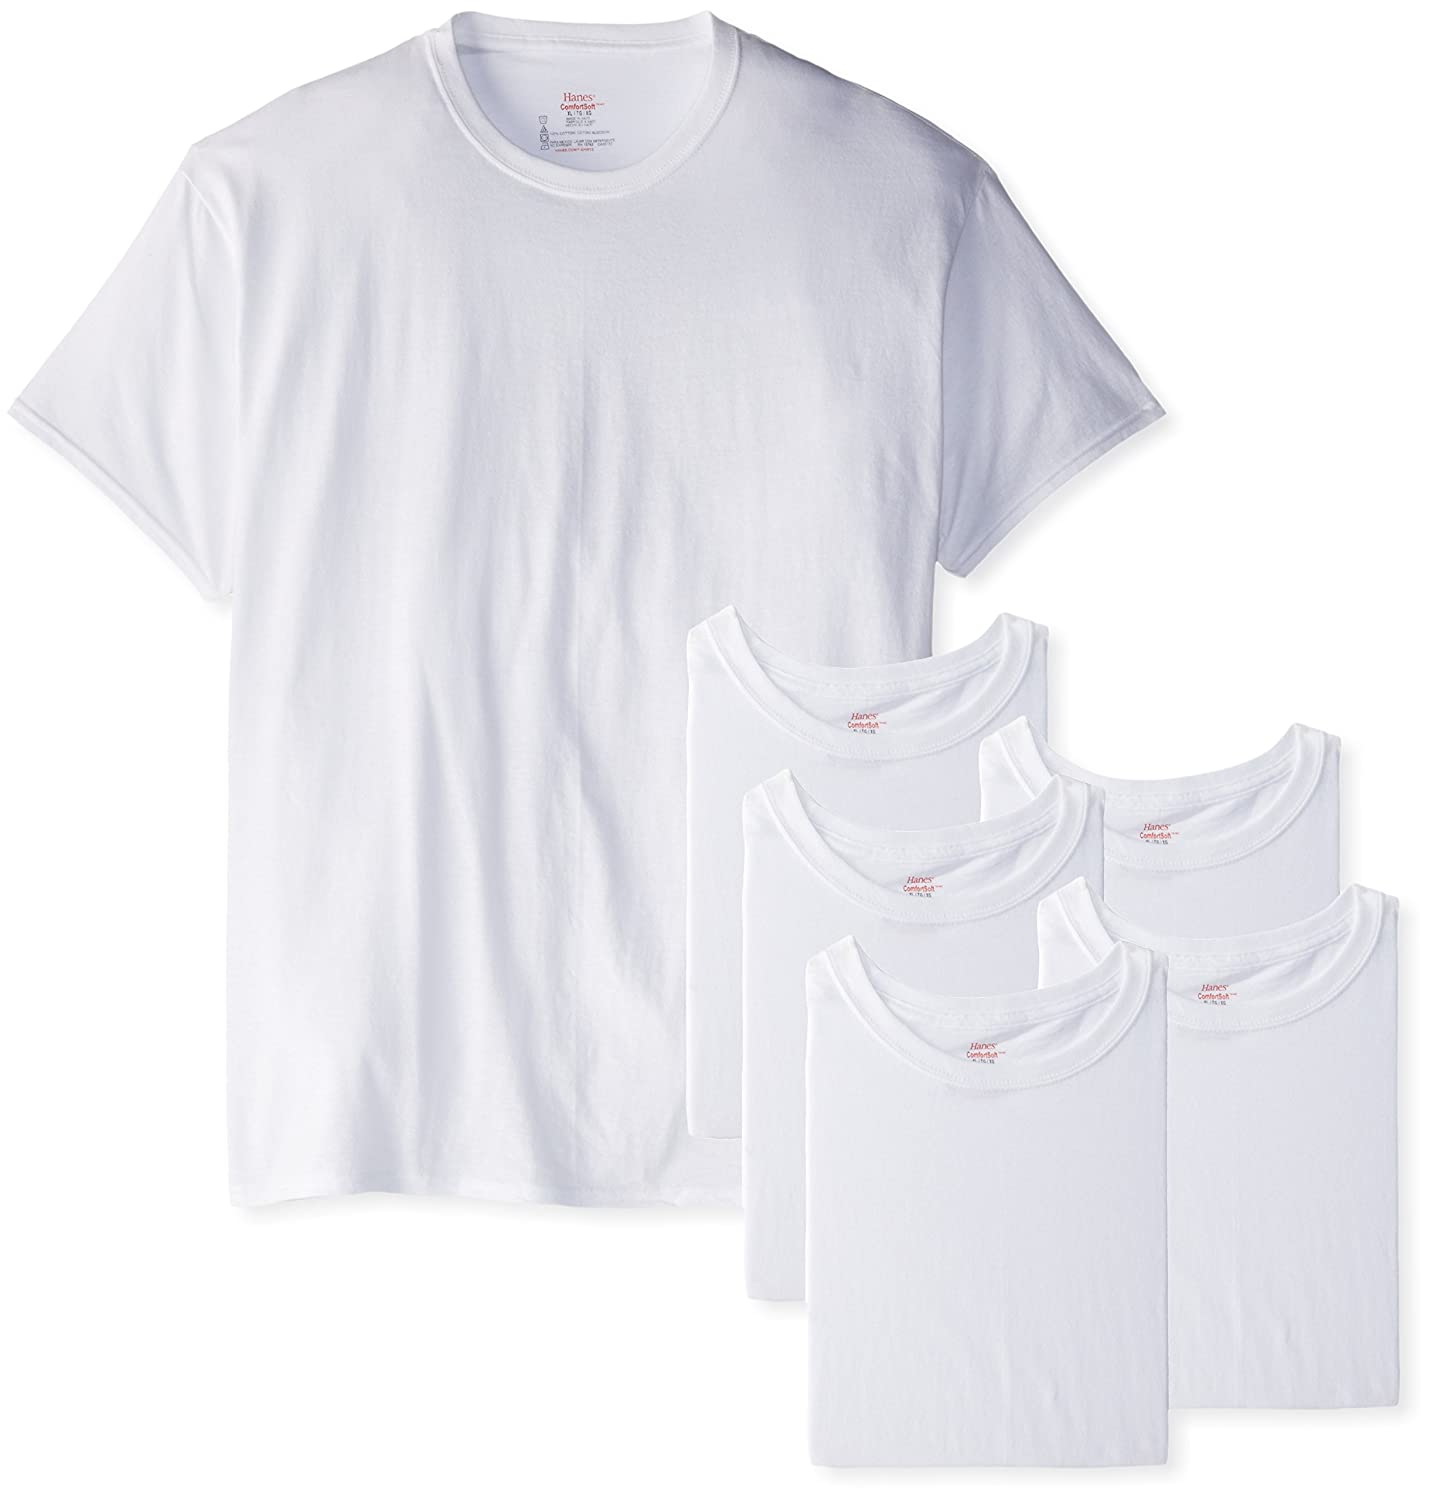 Hanes Men's Crew T-Shirt (Pack of 6) Hanes Men's Underwear 2135P6